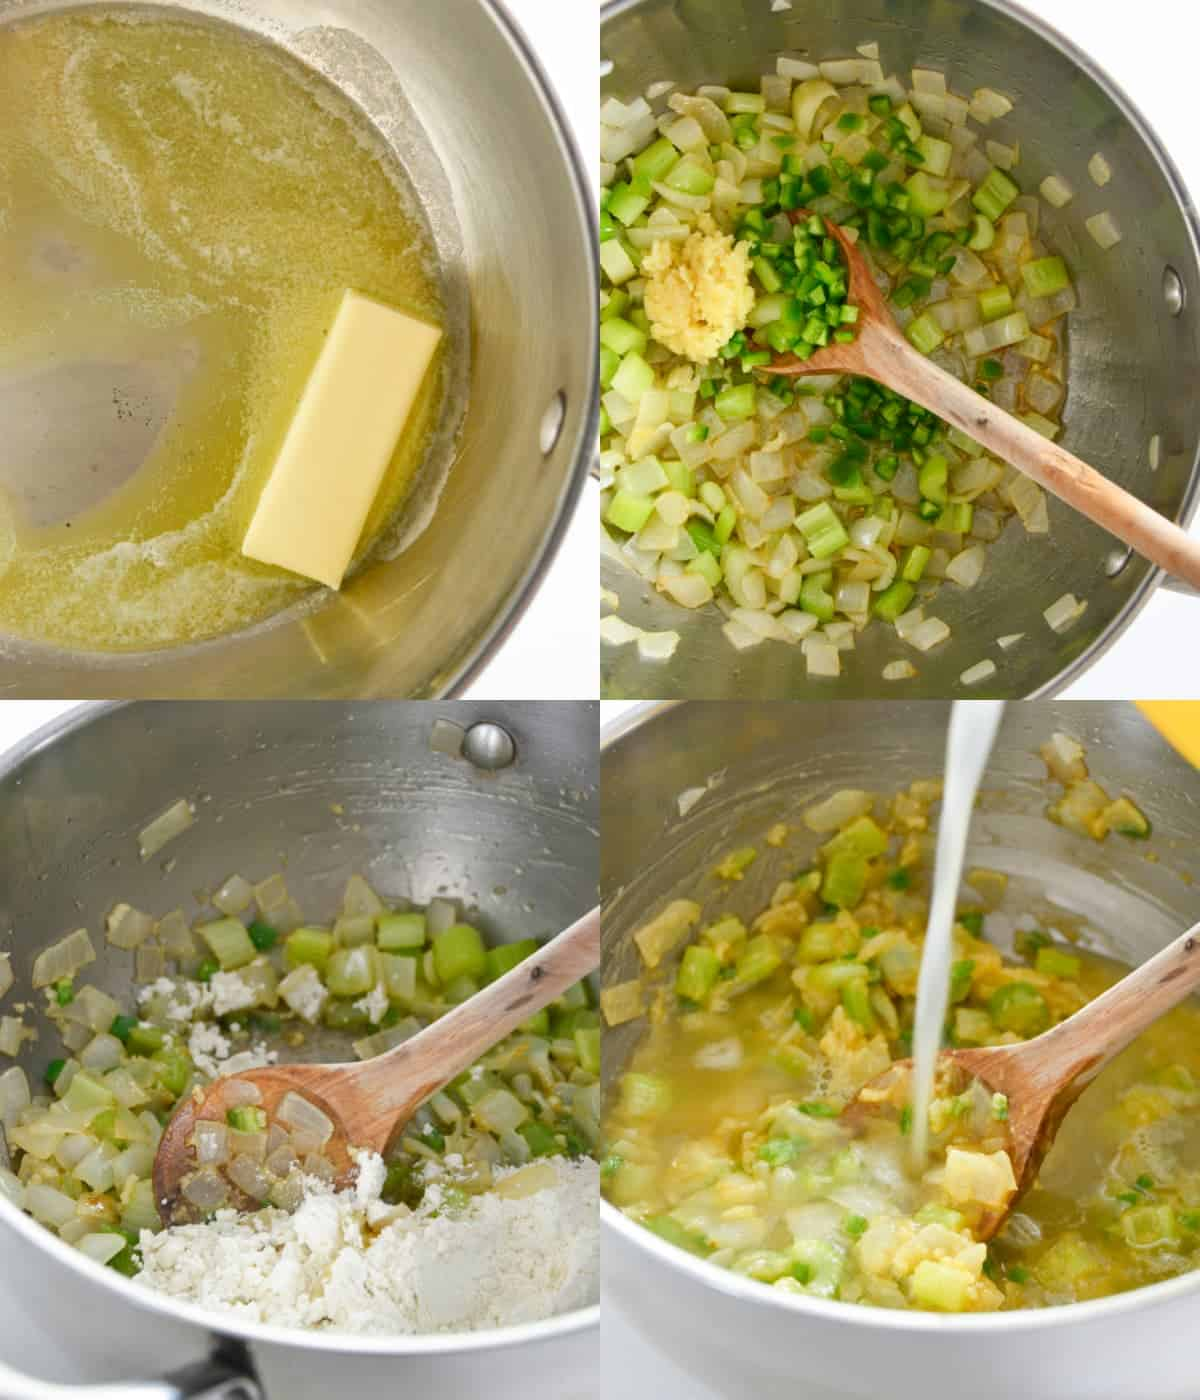 Four process photos. First one, butter melted in a pot. Second one, veggies and garlic added to the melted butter. Third one, flour sprinkled on top of the veggies. Fourth one, chicken stock being poured into the pot